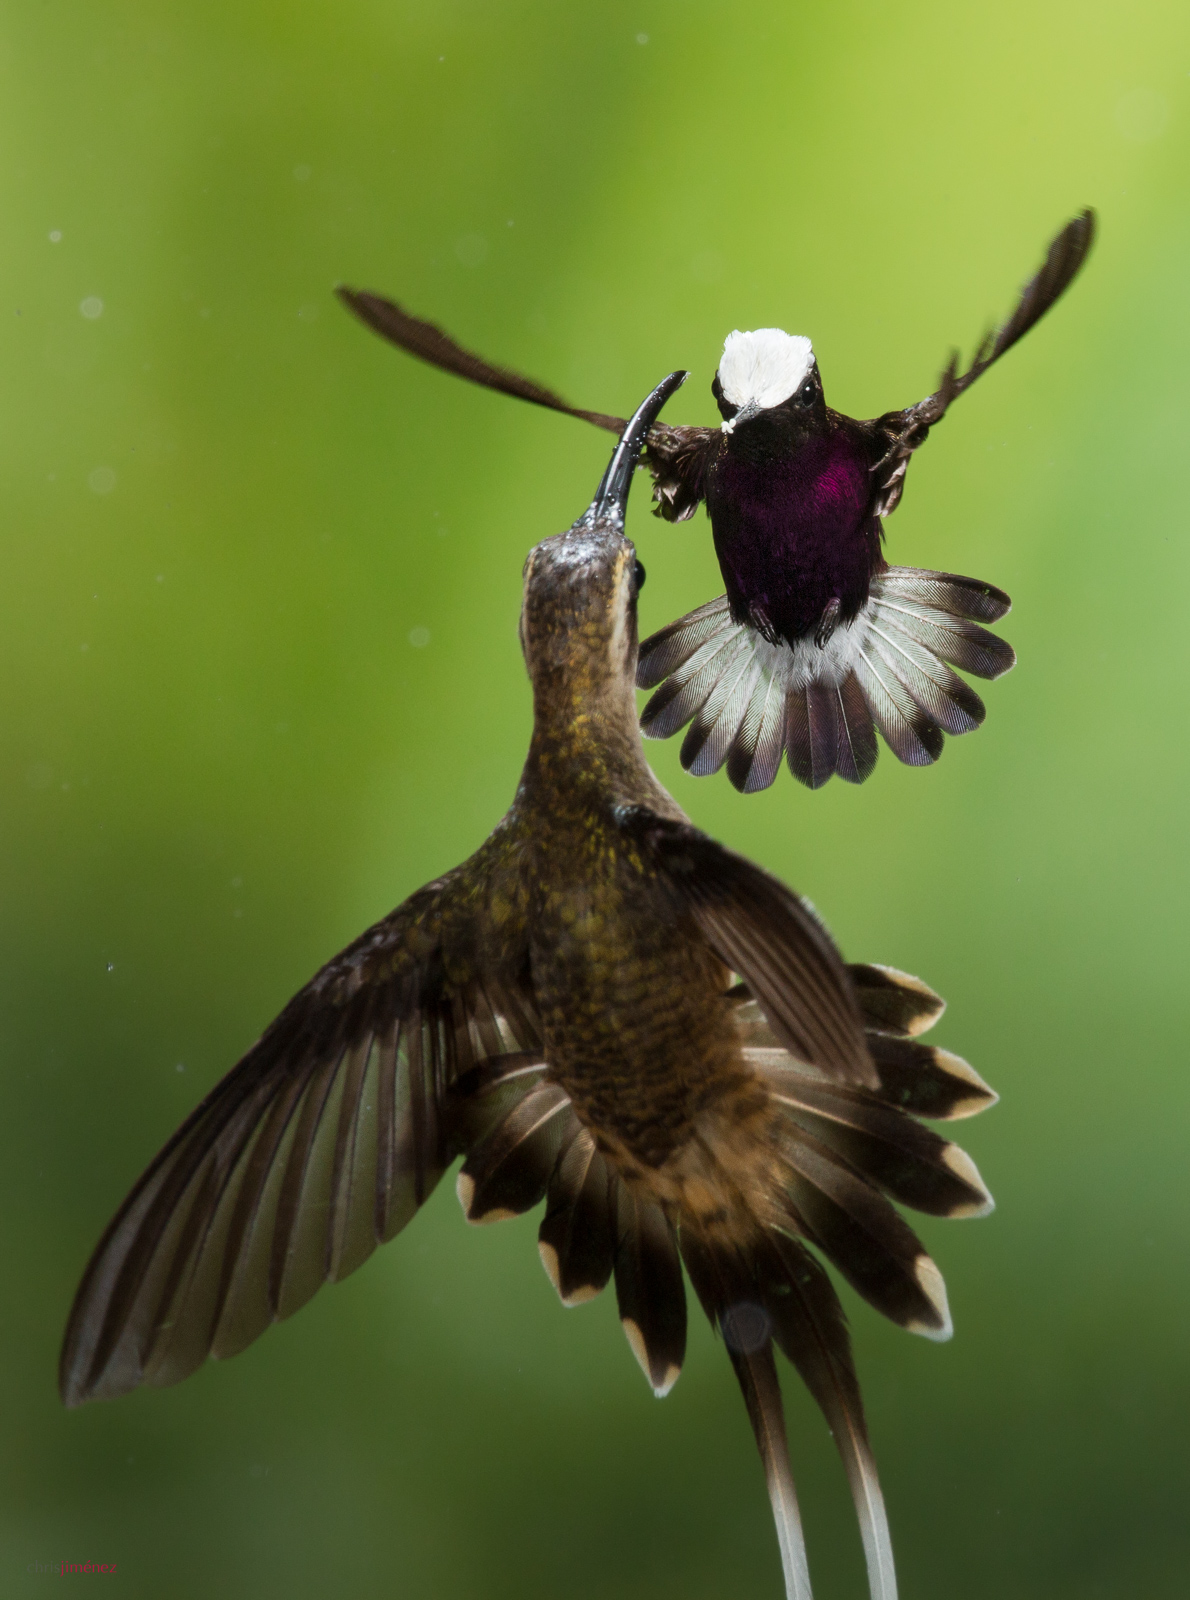 Snowcap (Microchera albocoronata) male defending his territory in flight at the low lands of Costa Rica